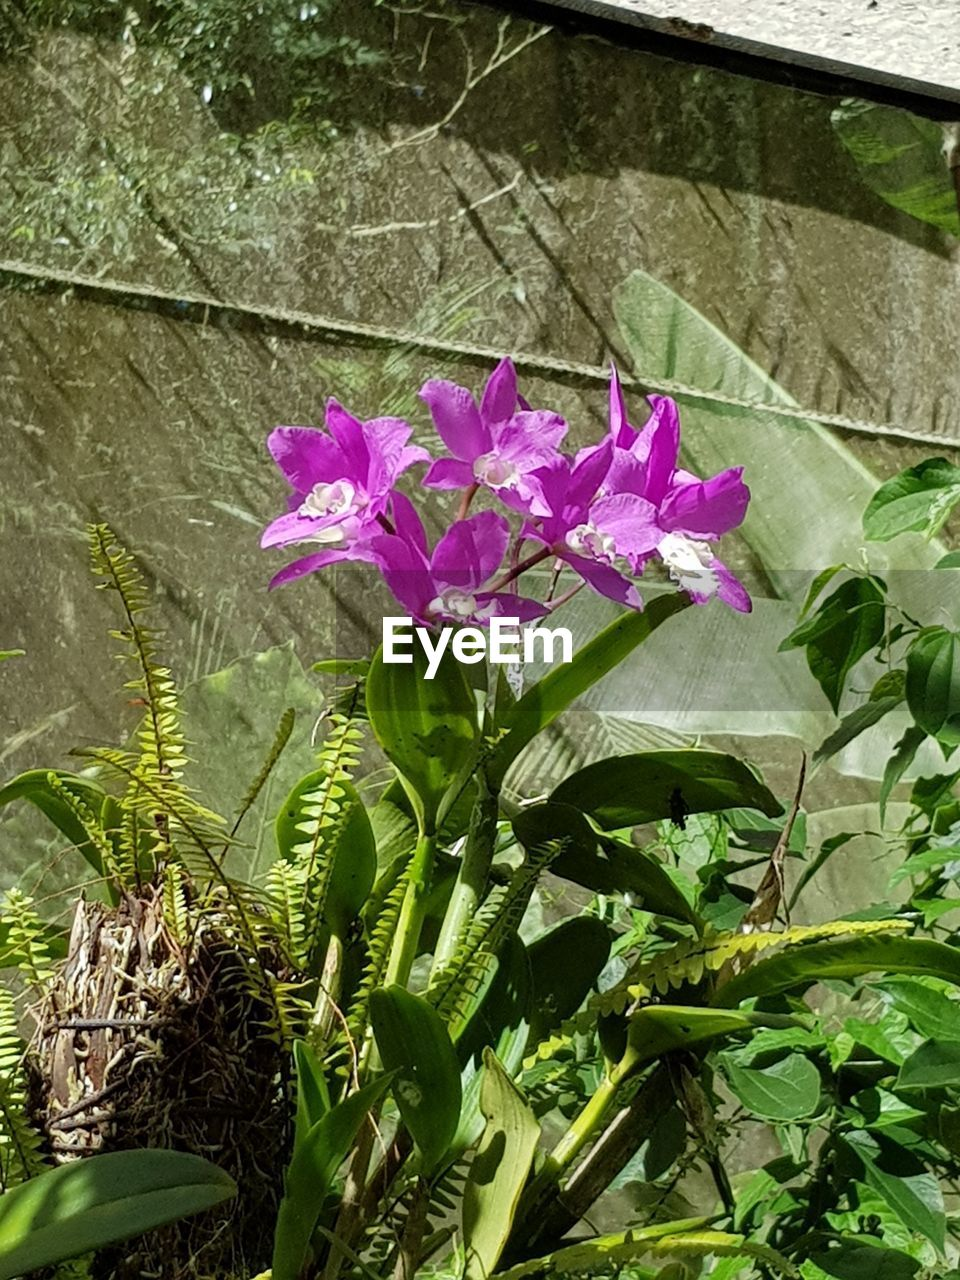 growth, nature, leaf, flower, plant, beauty in nature, green color, no people, petal, fragility, day, outdoors, freshness, pink color, blooming, flower head, close-up, periwinkle